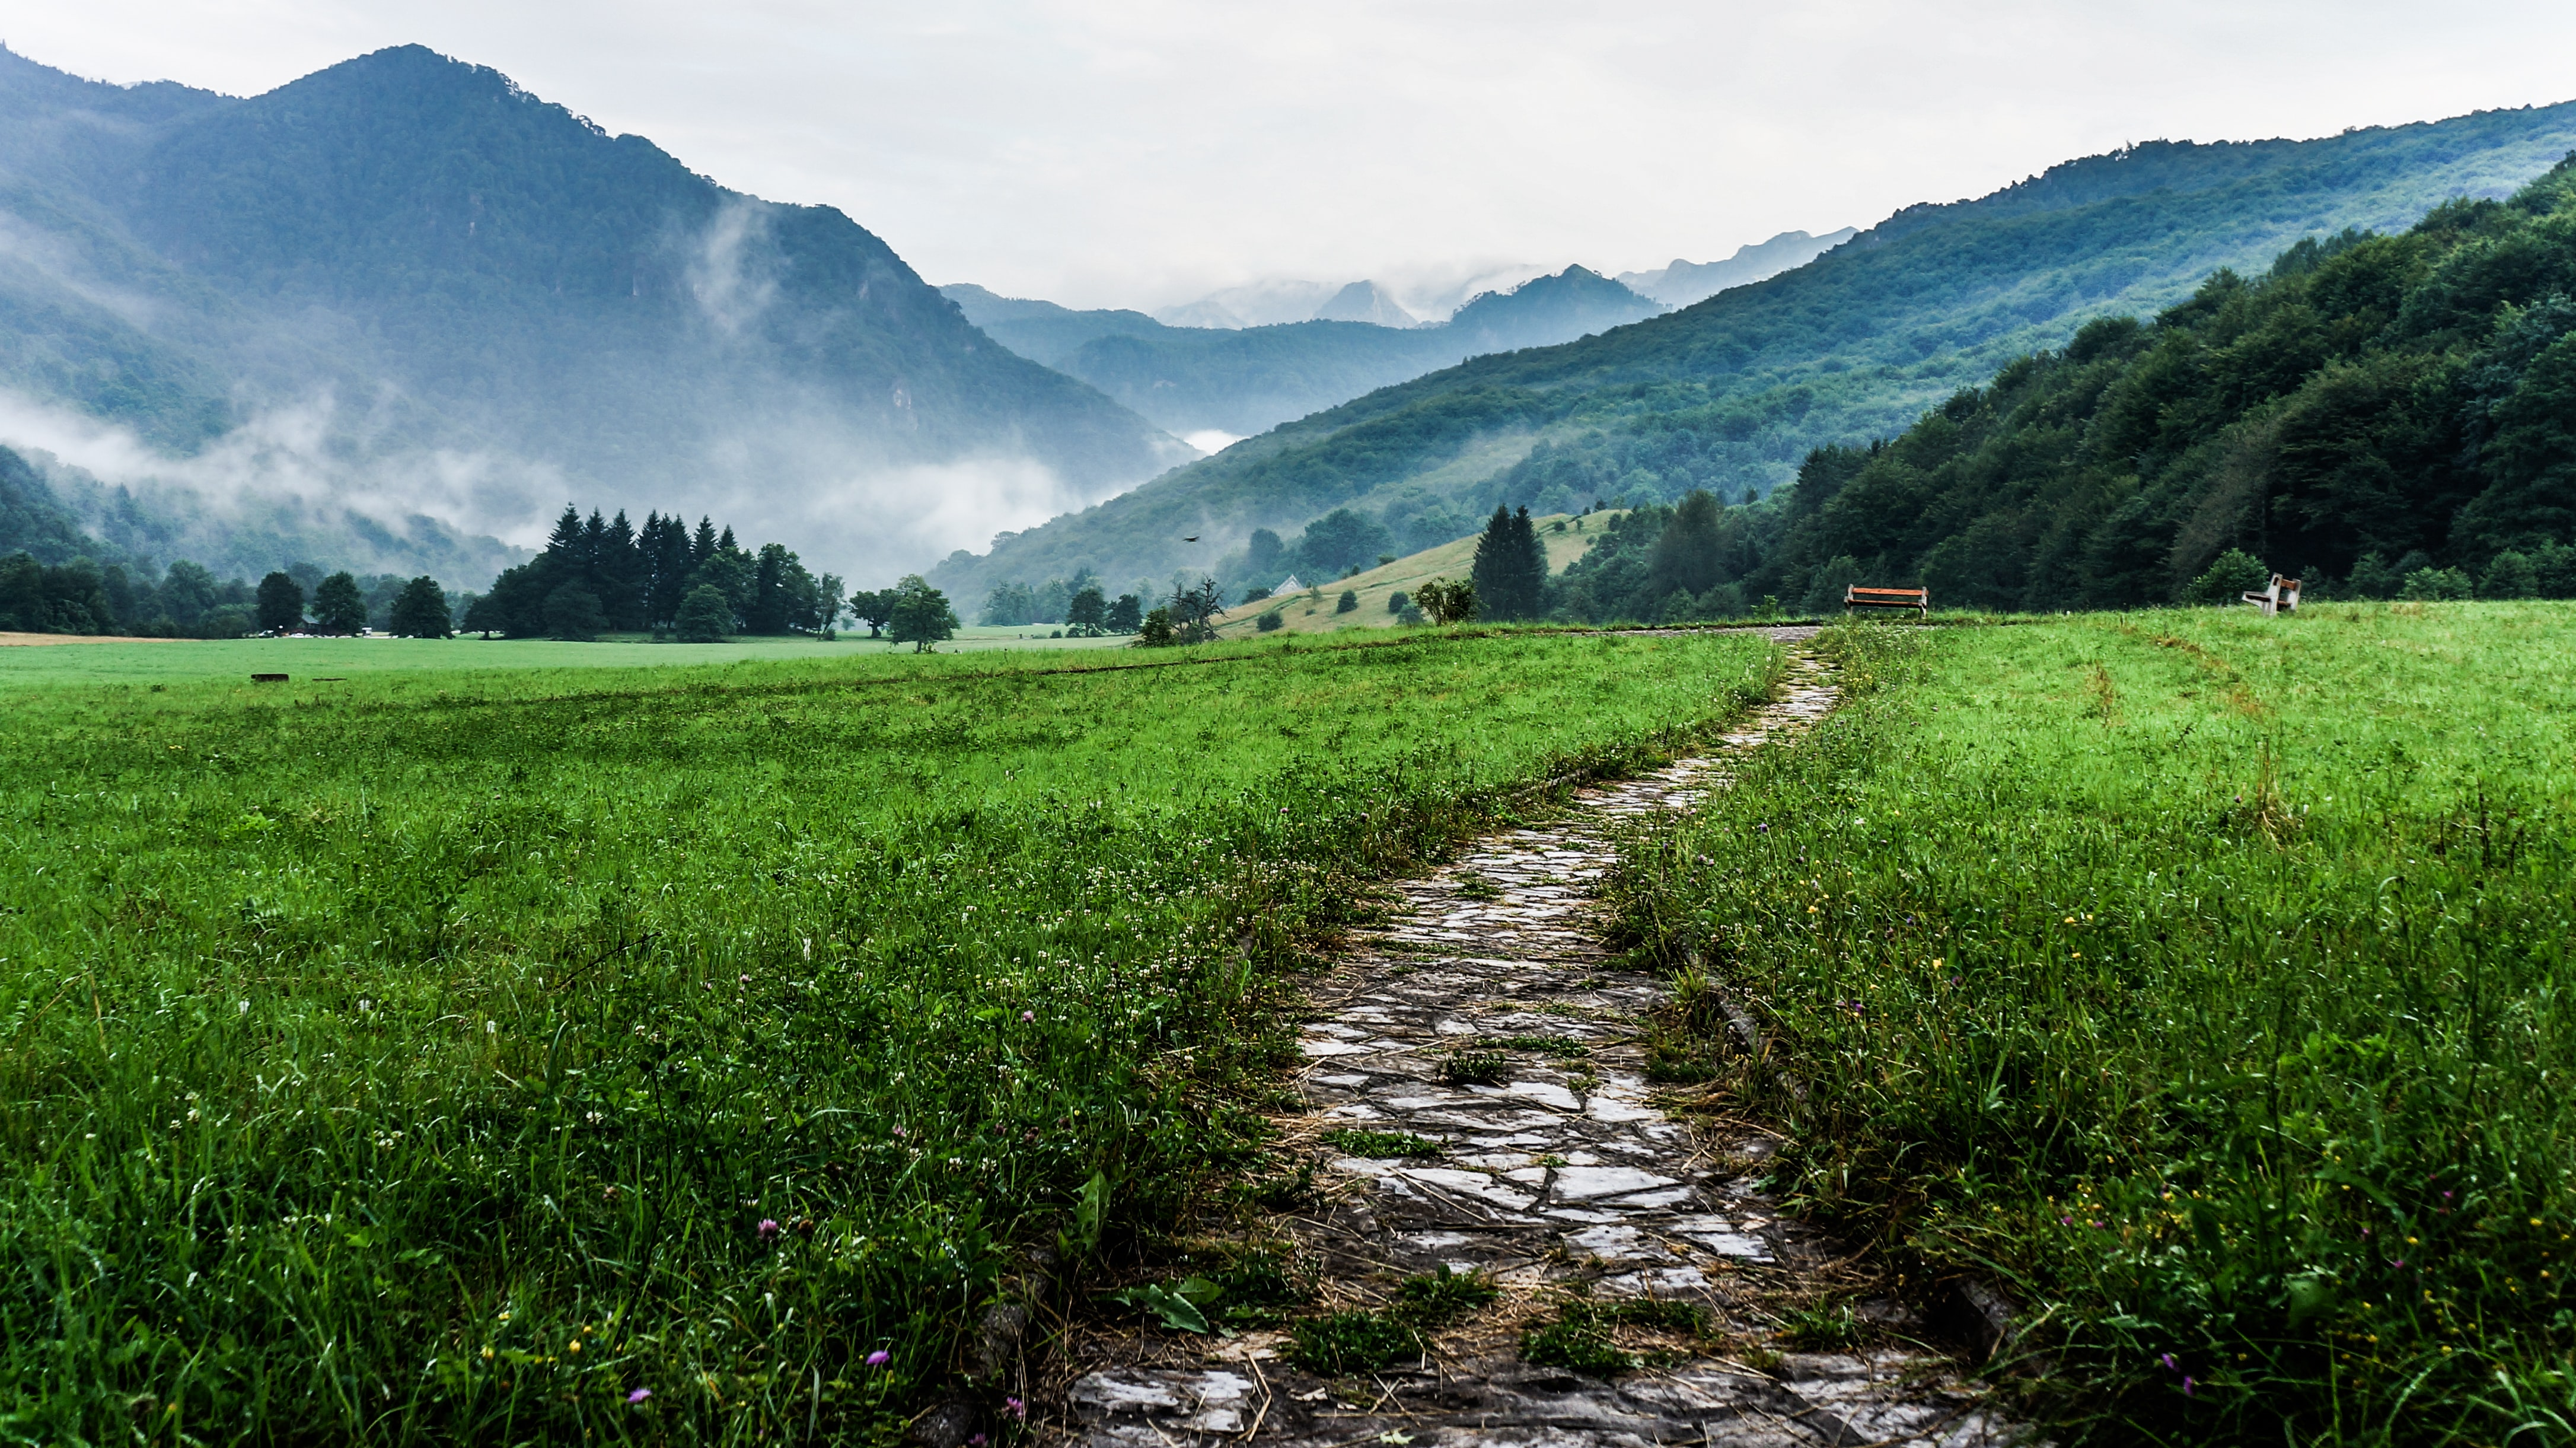 Rural stone path leads through a grassy meadow near mountains in Sutjeska